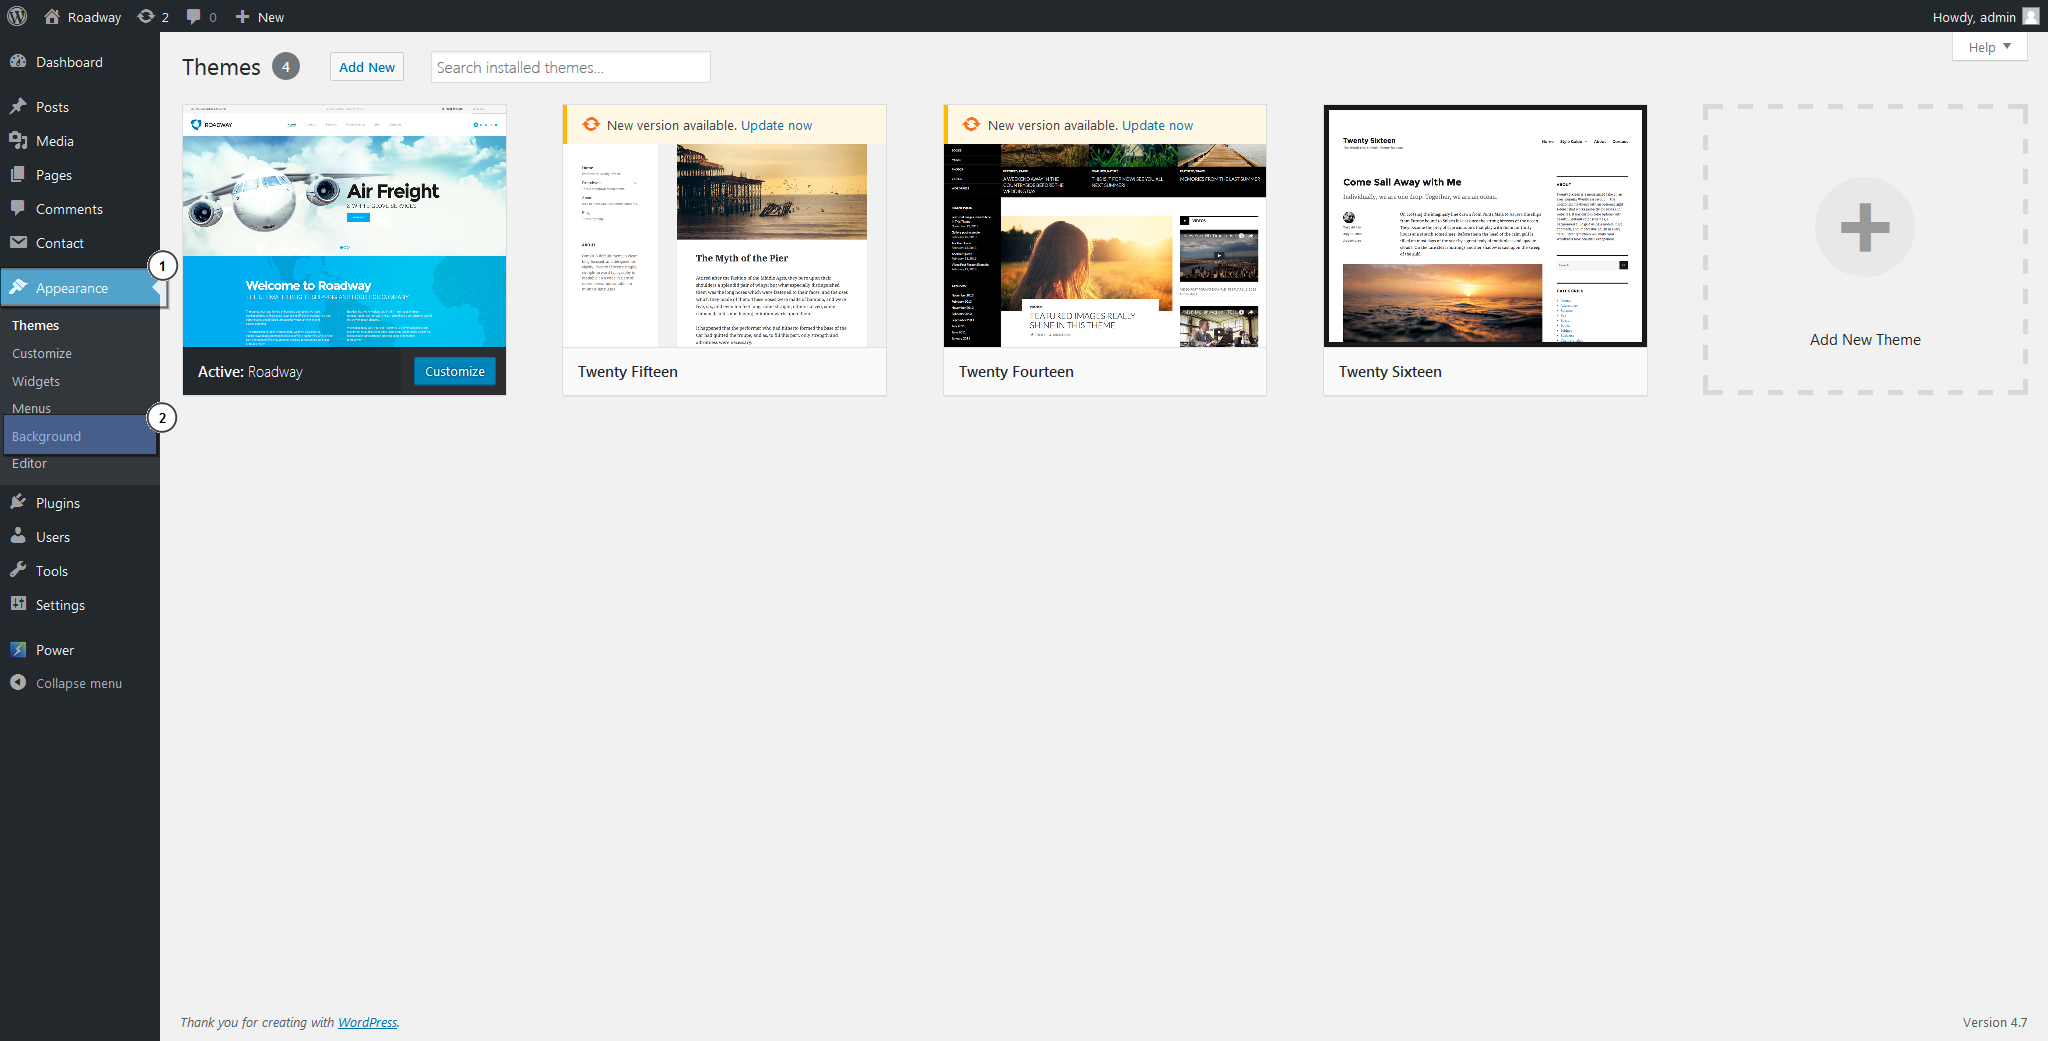 how to change background image in wordpress theme